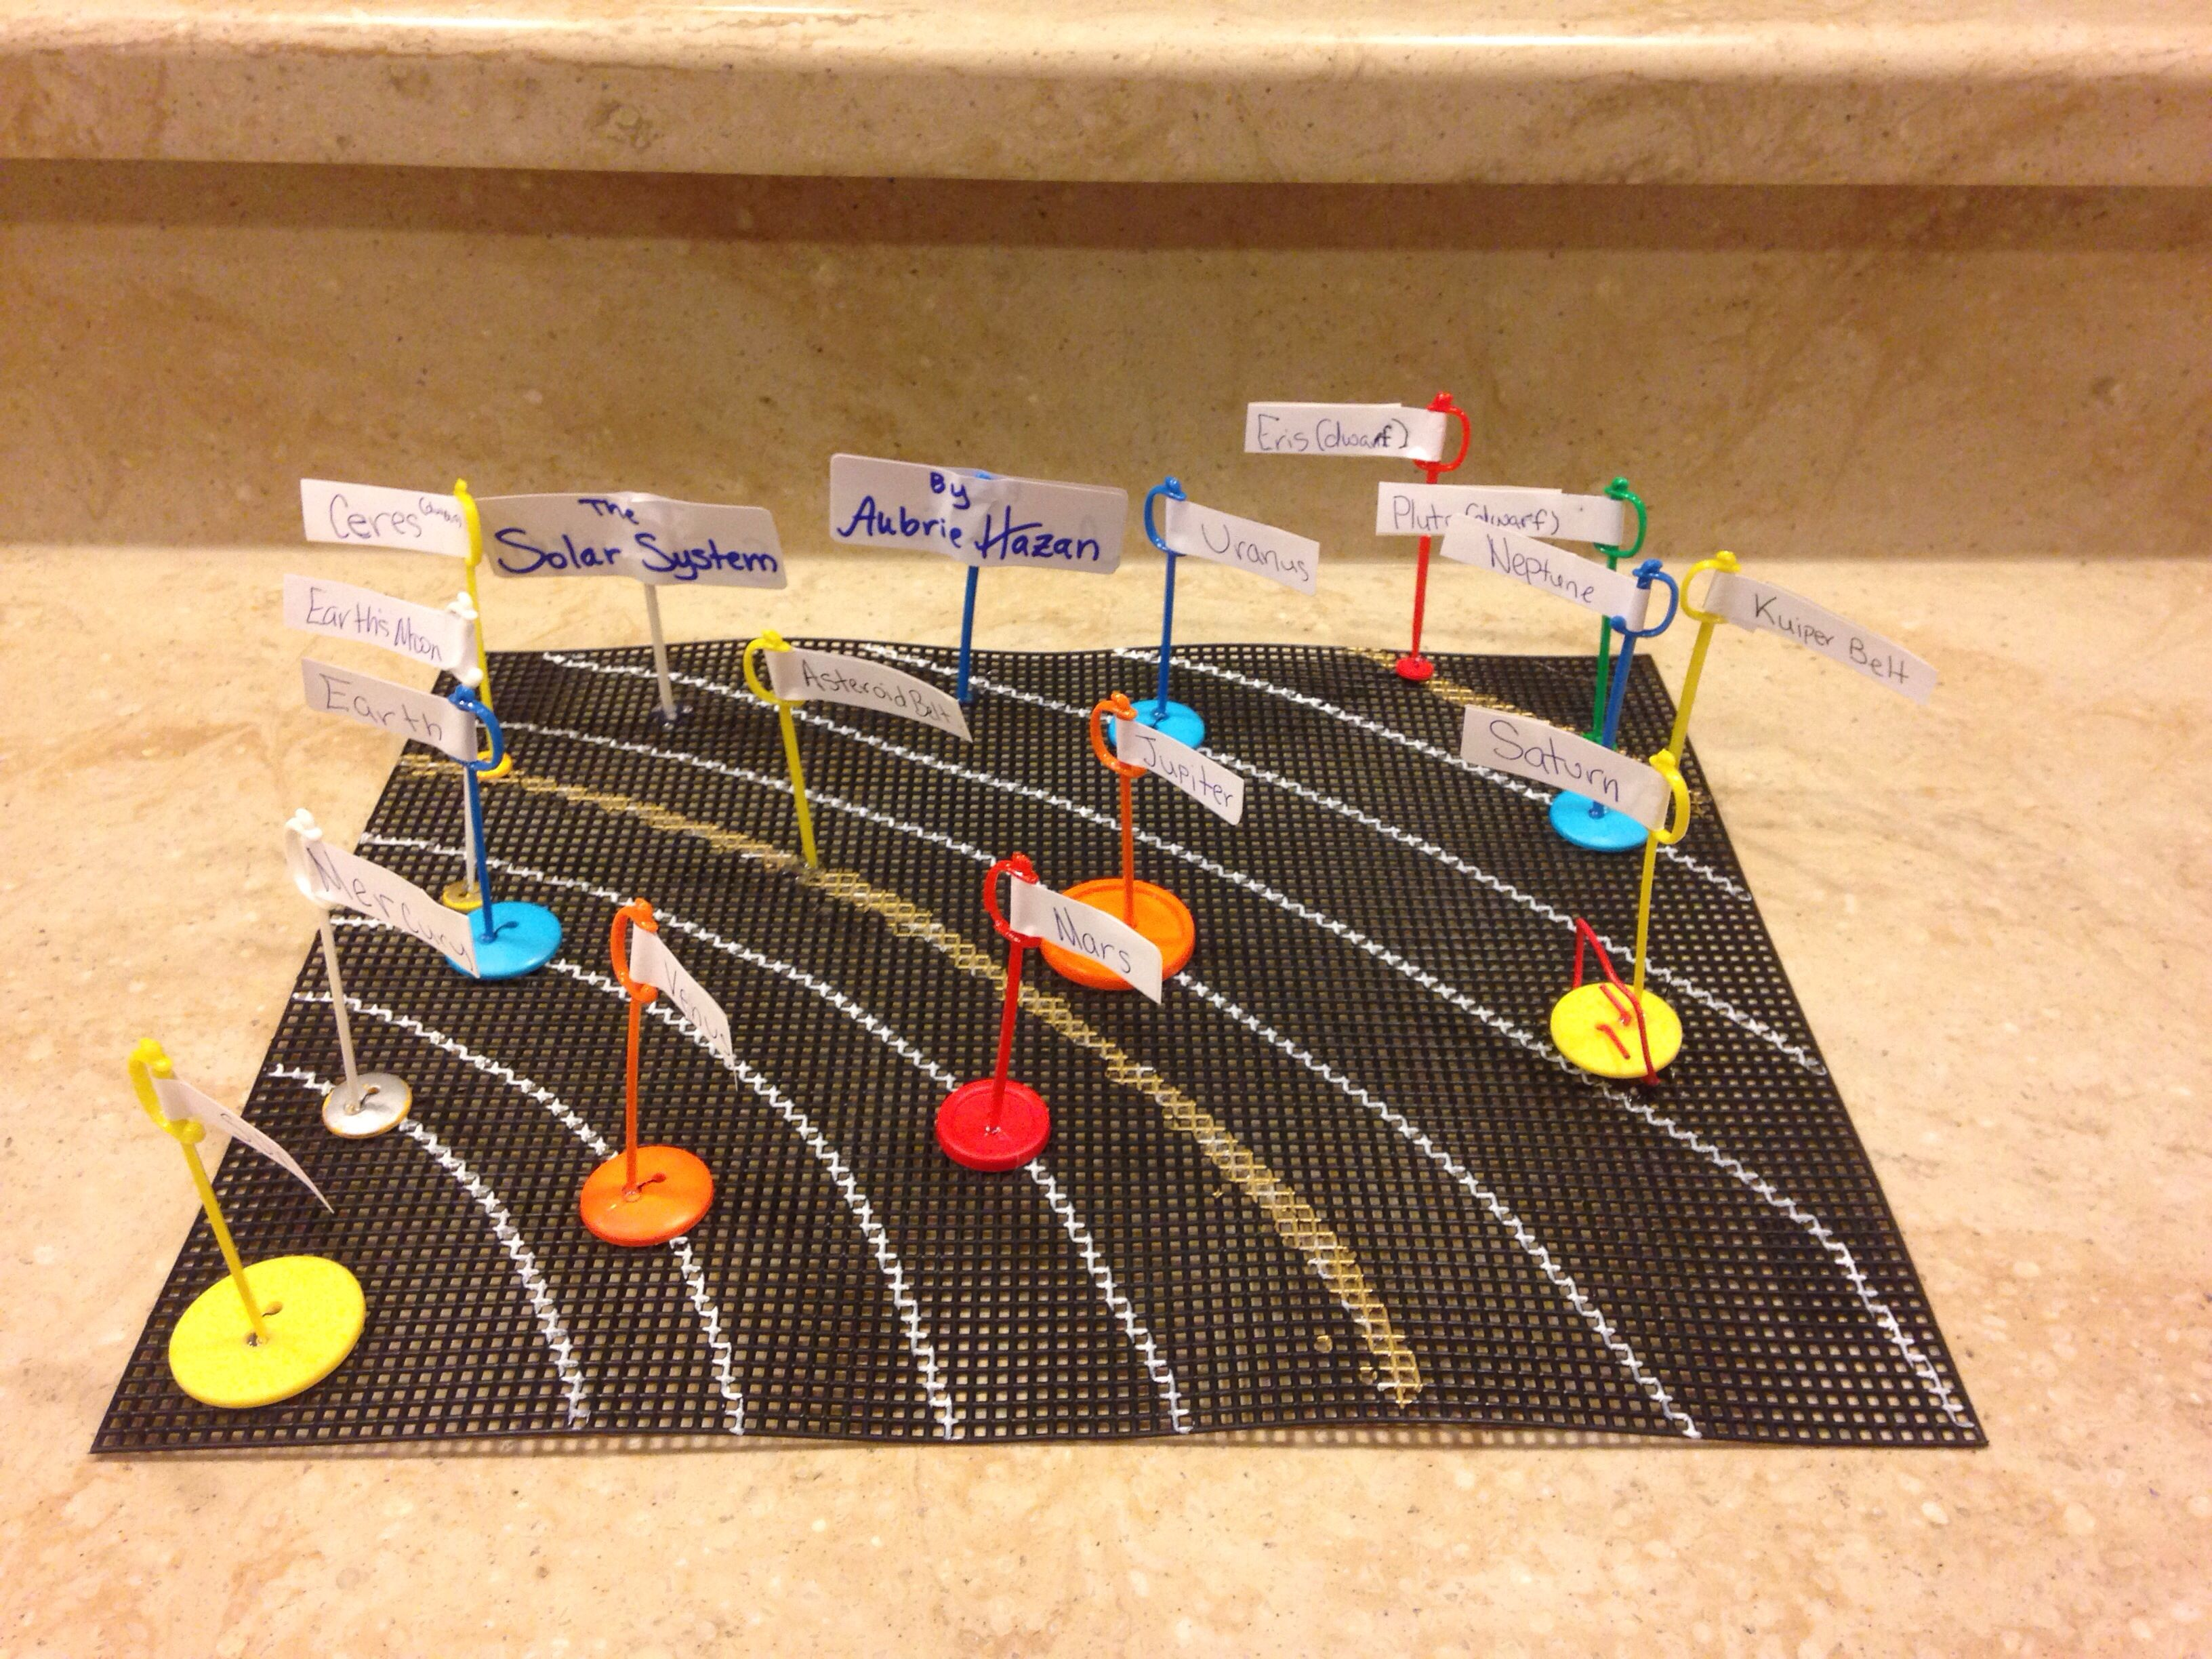 Solar System Diagram For School Project Made Our Of A